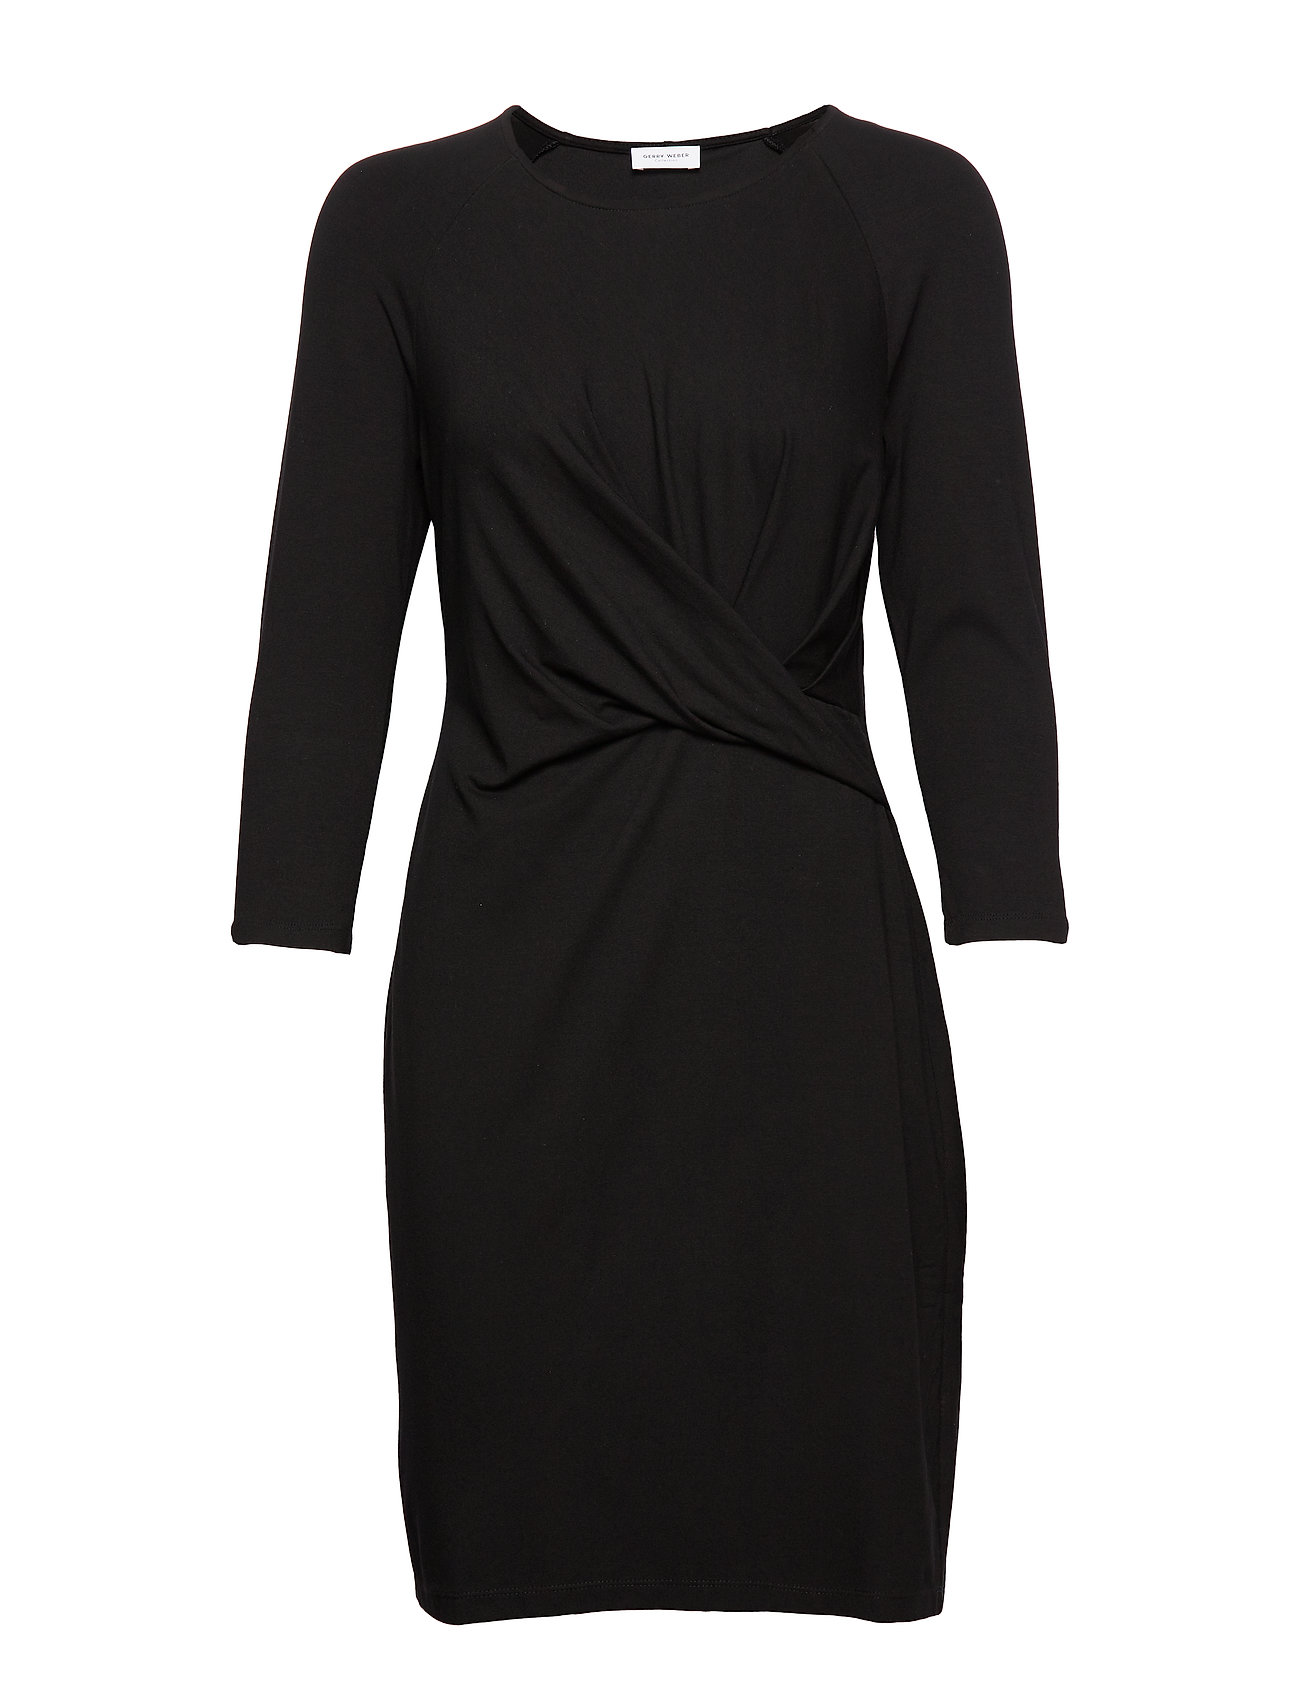 Gerry Weber DRESS KNITTED FABRIC - BLACK